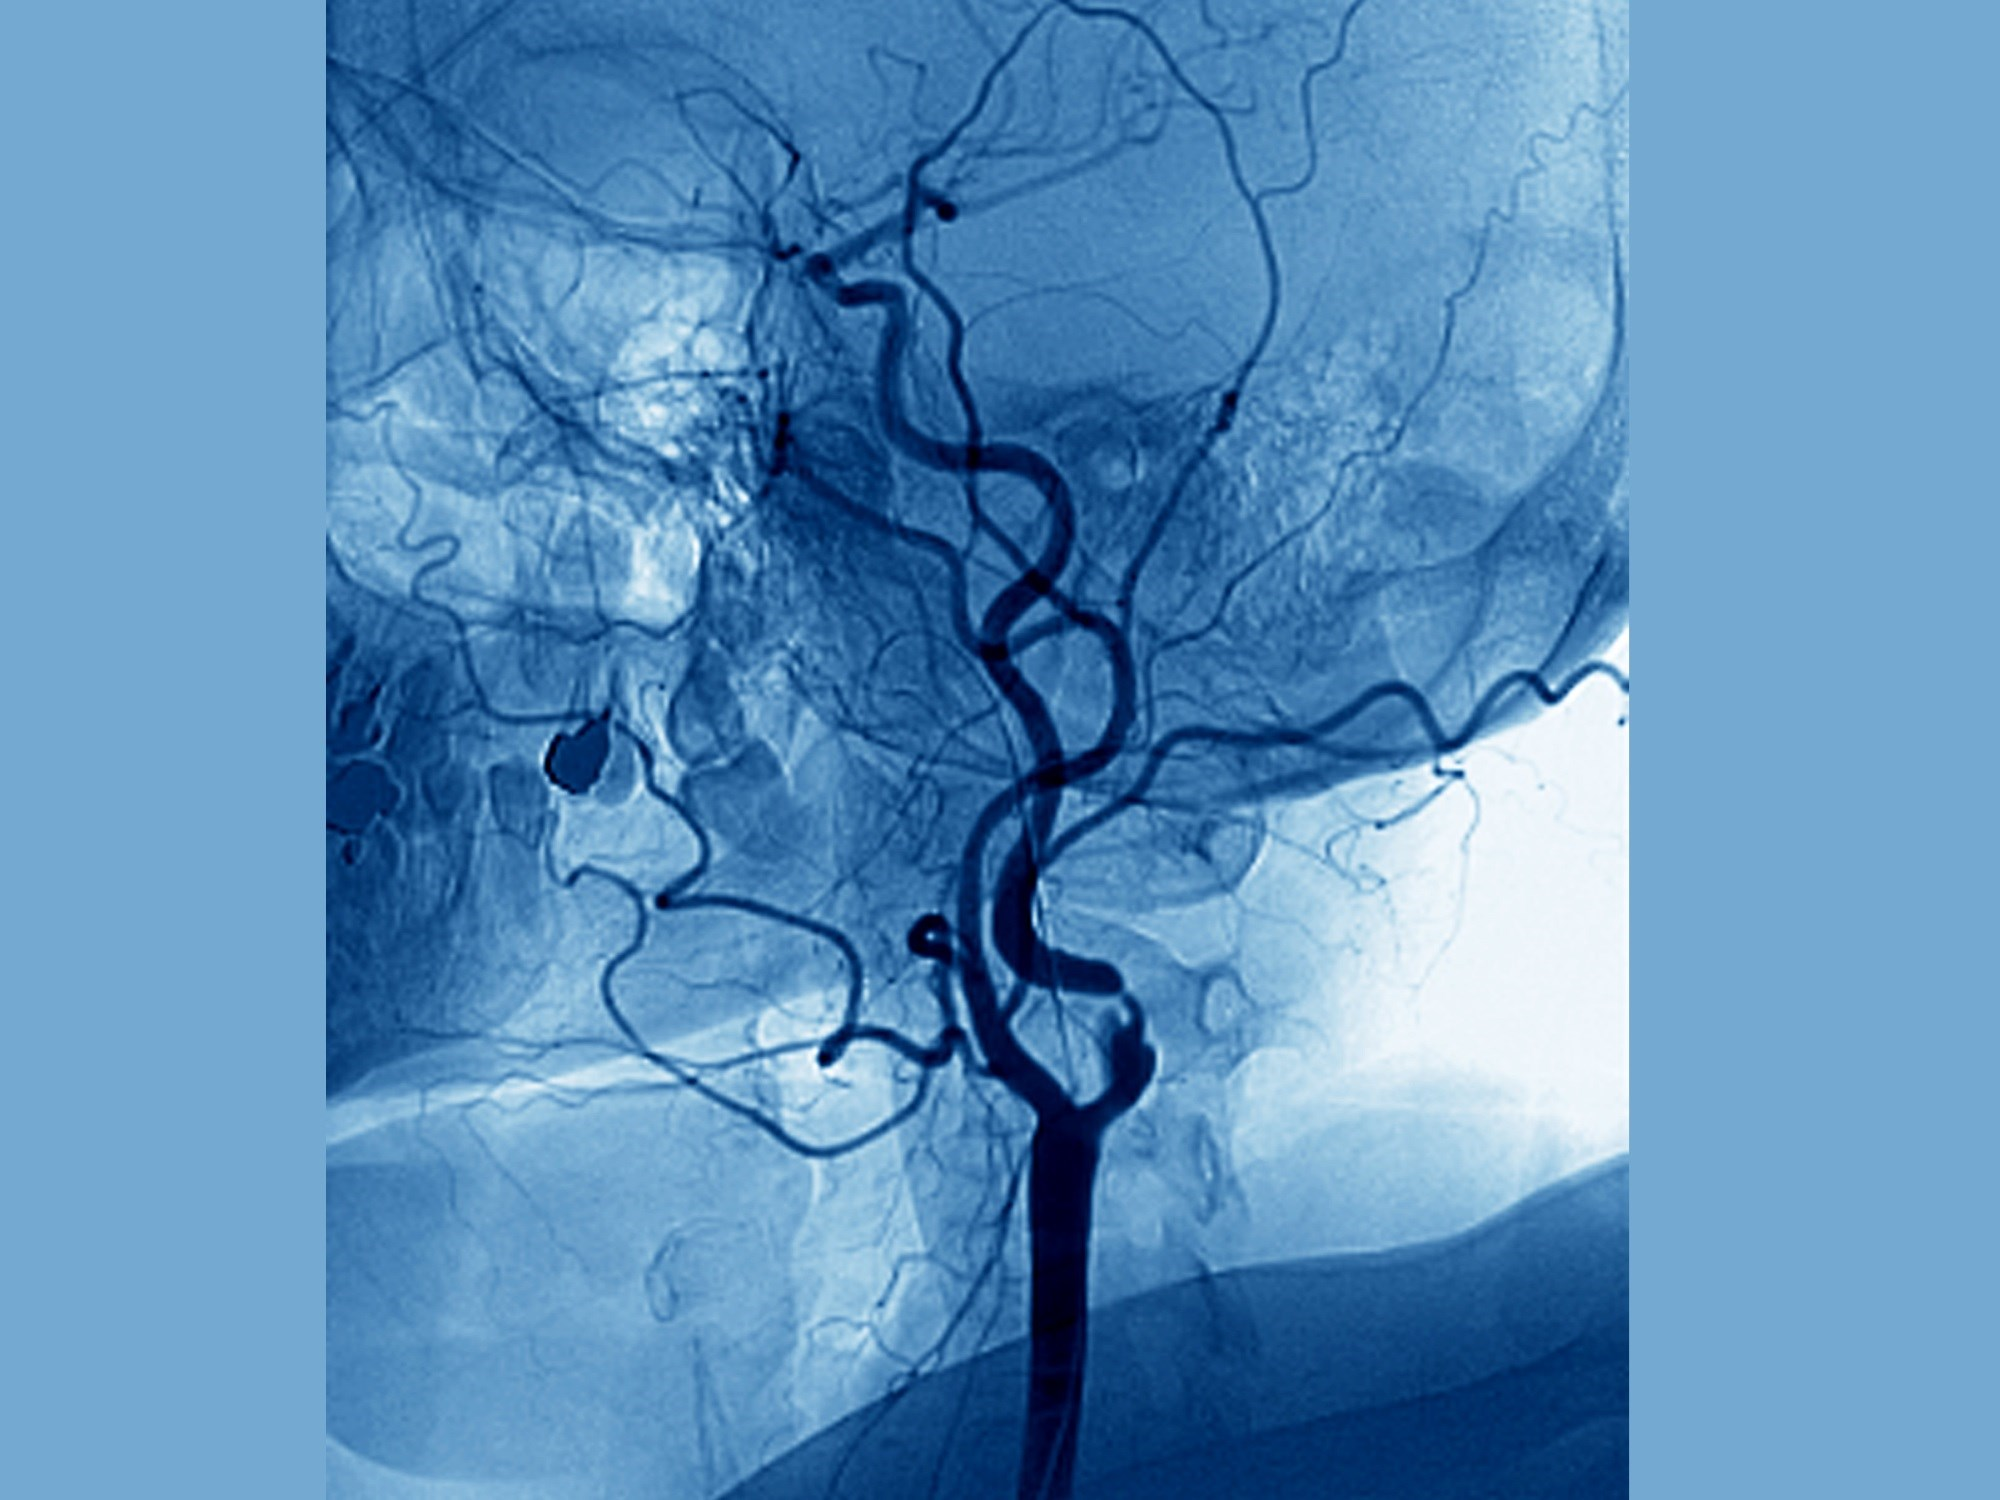 Early Carotid Intervention Linked to Functional Dependence After Stroke